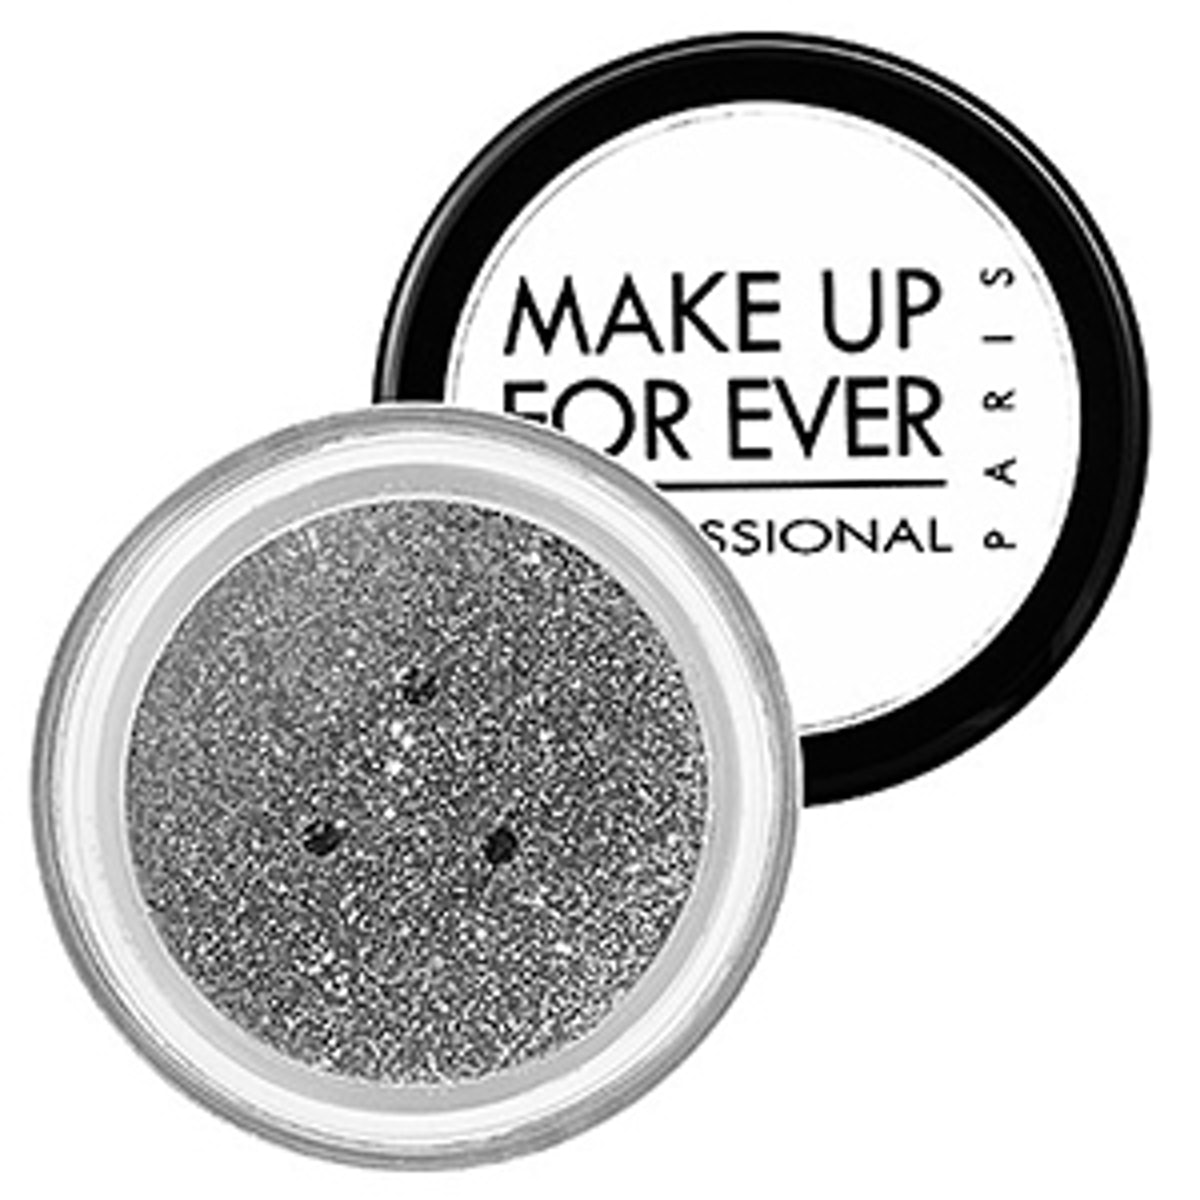 Make Up For Ever Glitters in Metallic Silver